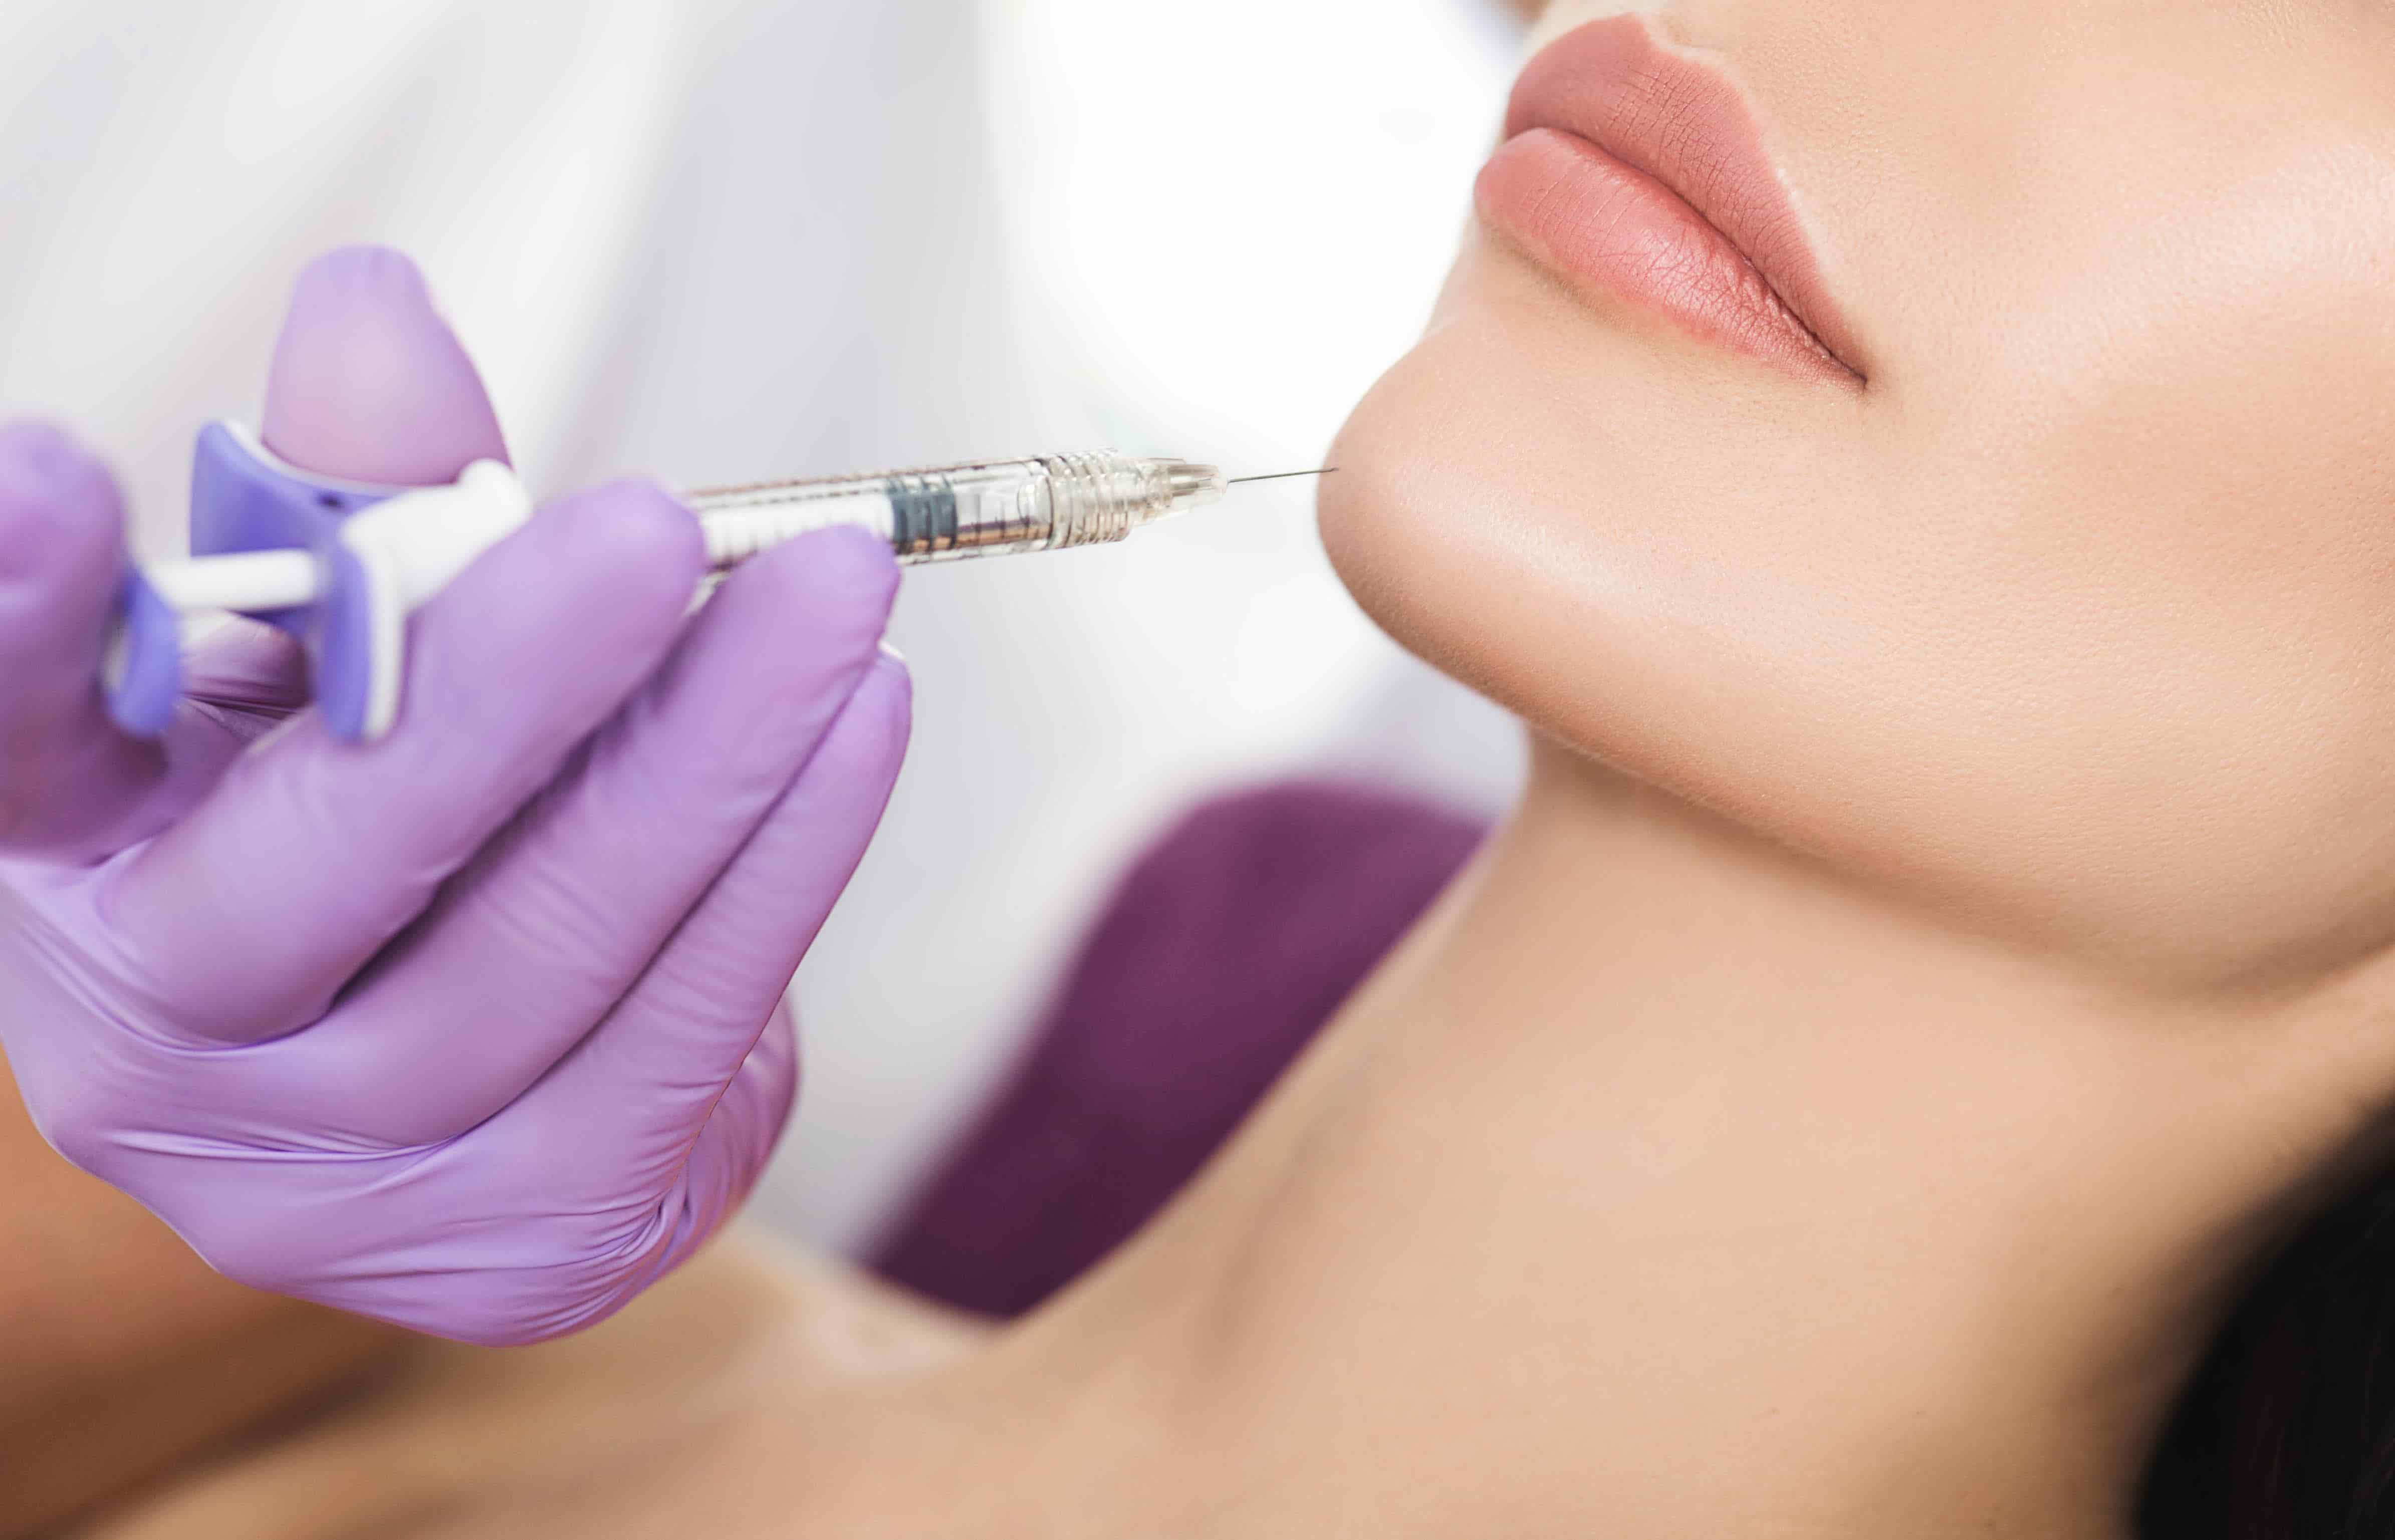 BioRevitalisation (Mesotherapy)